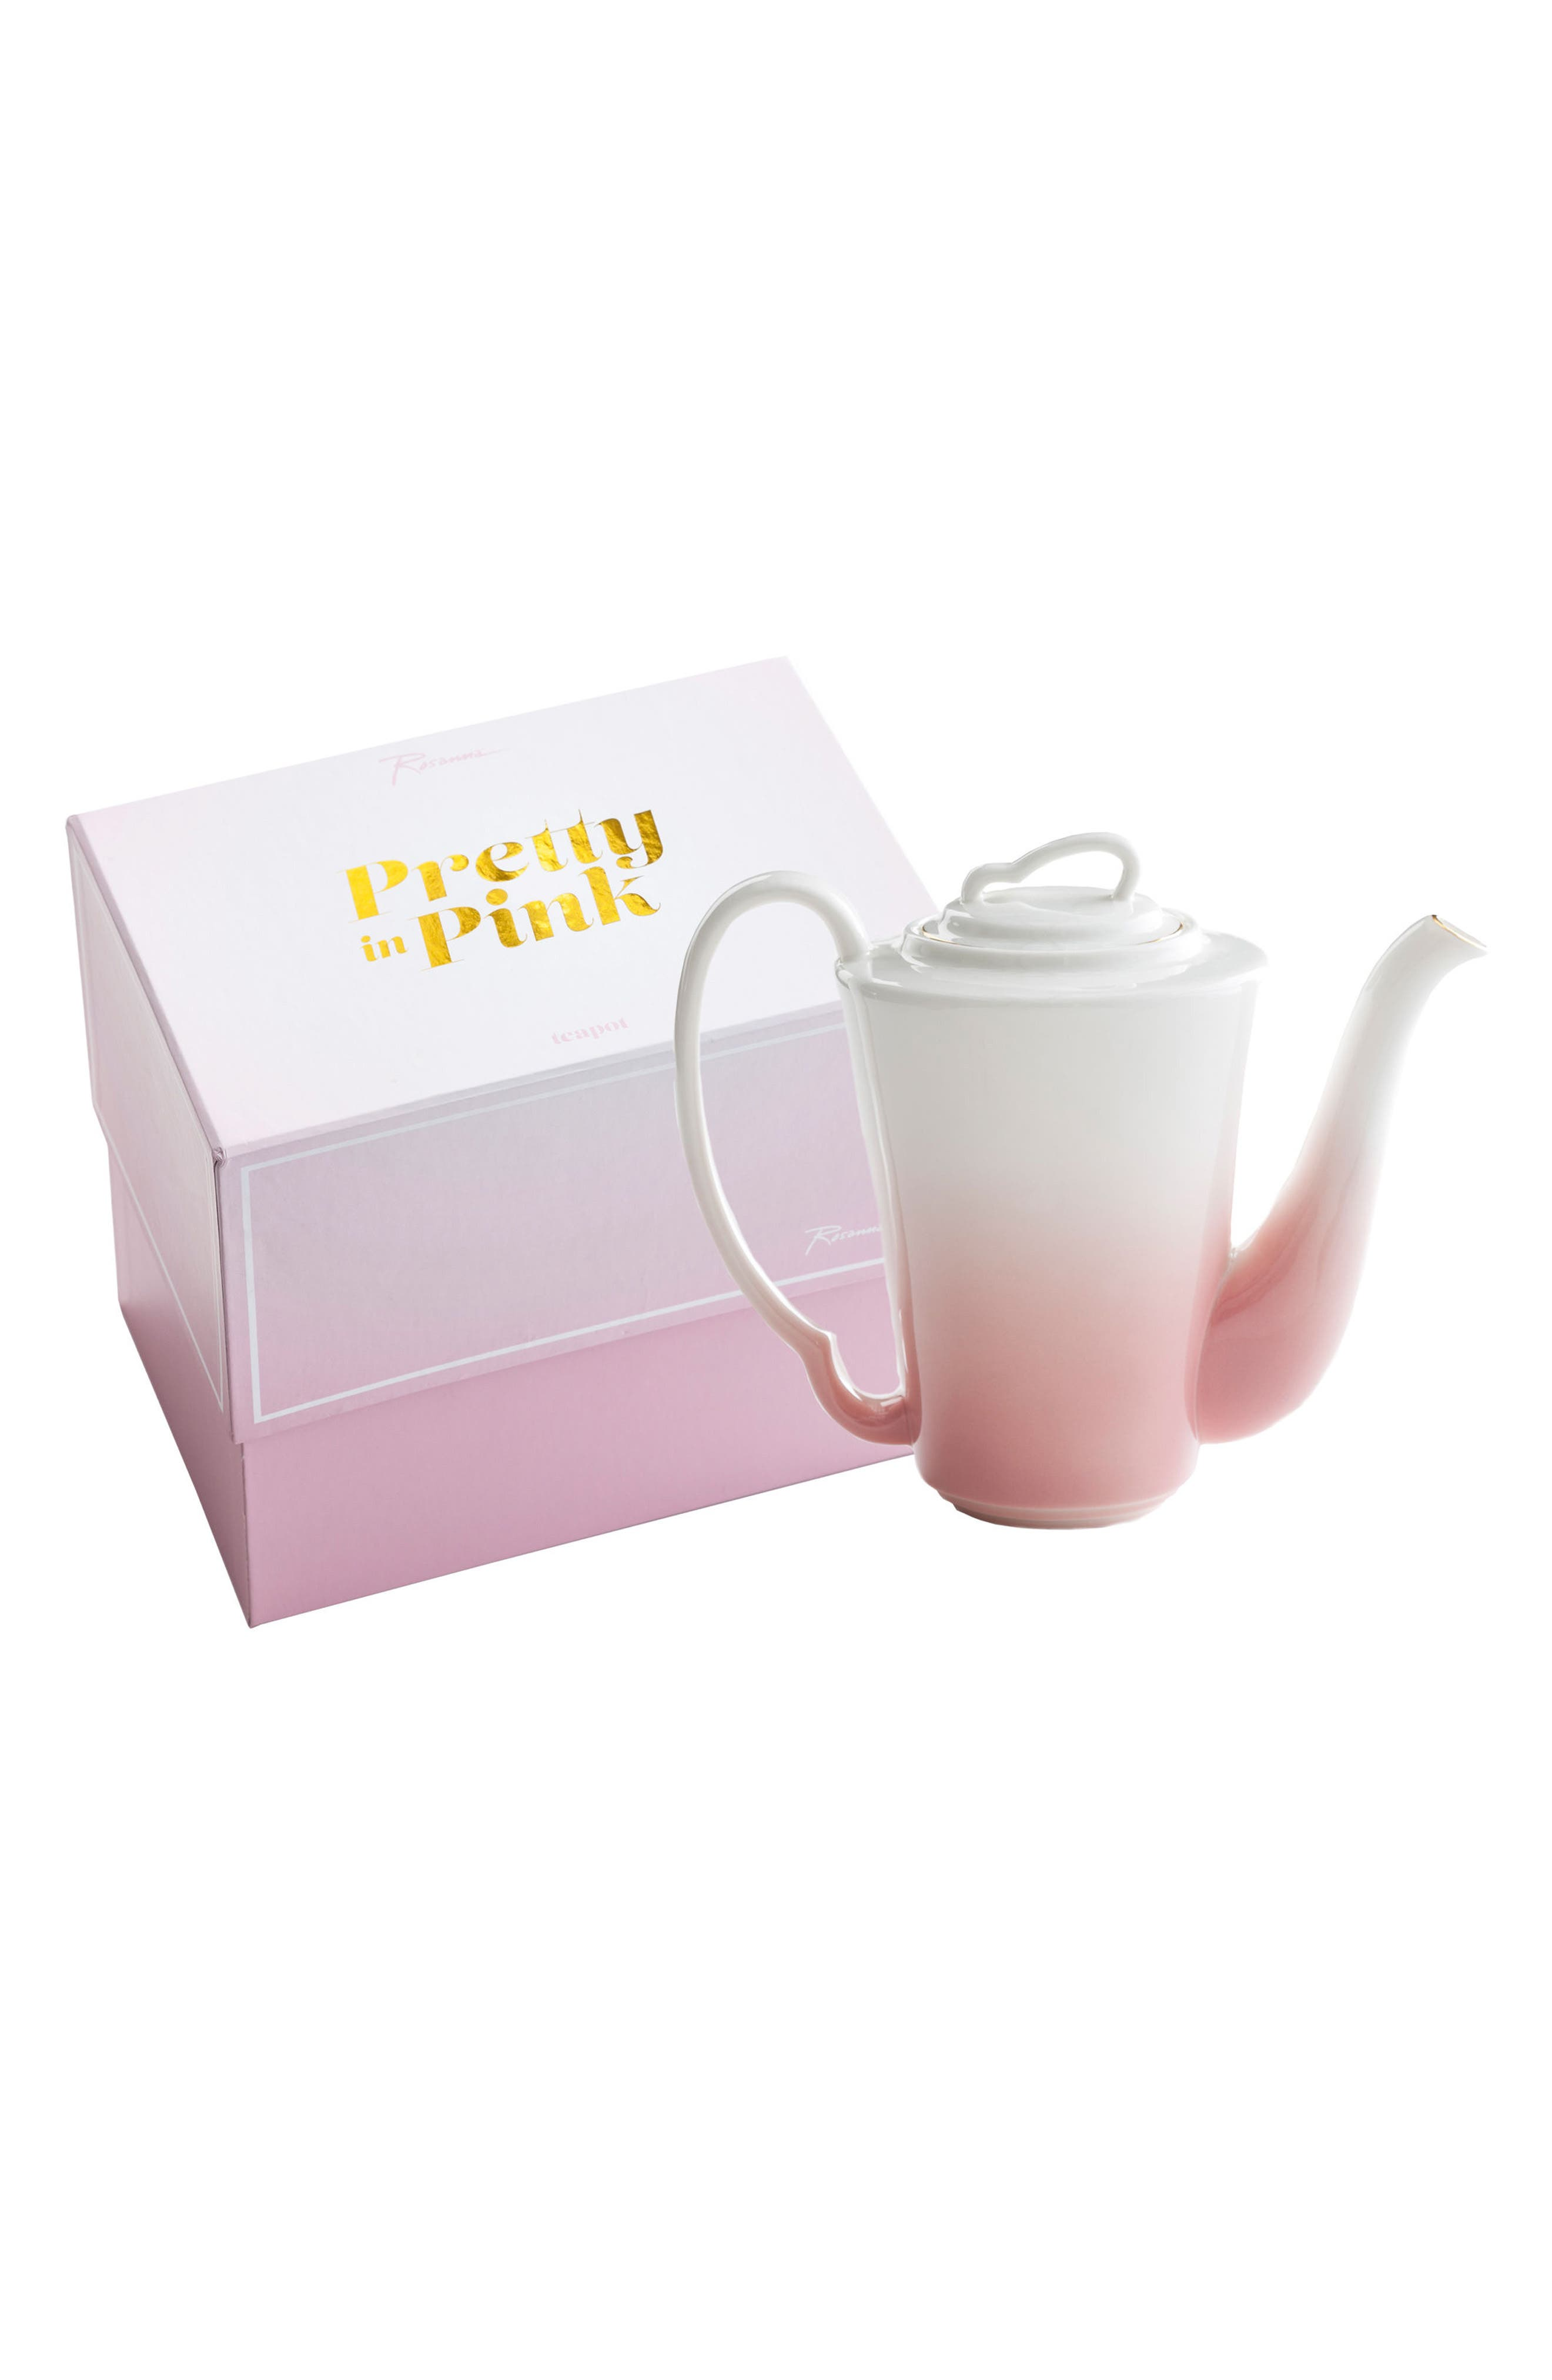 Alternate Image 1 Selected - Rosanna Pretty In Pink Porcelain Teapot